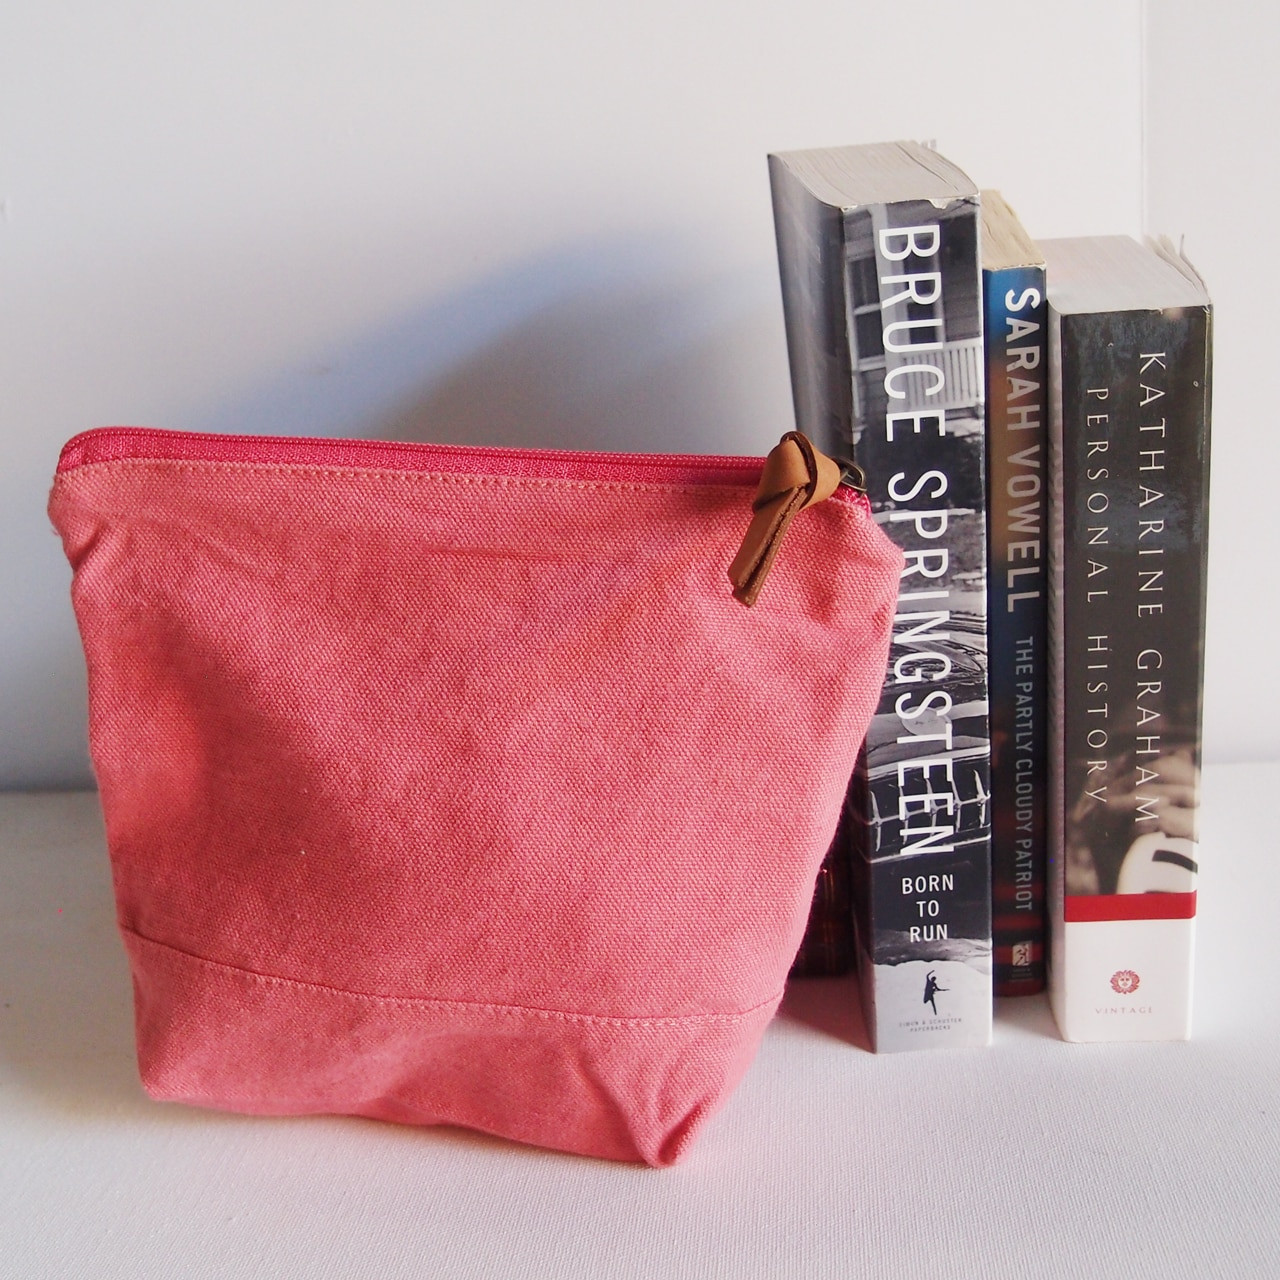 """Wholesale Zippered Pouches, Washed Canvas Zipper Pouch with Leather Puller Pink 8"""" x 6.3"""" x 2.4"""" Gusset B686-75, Cotton Zipper Pouch Supplier 